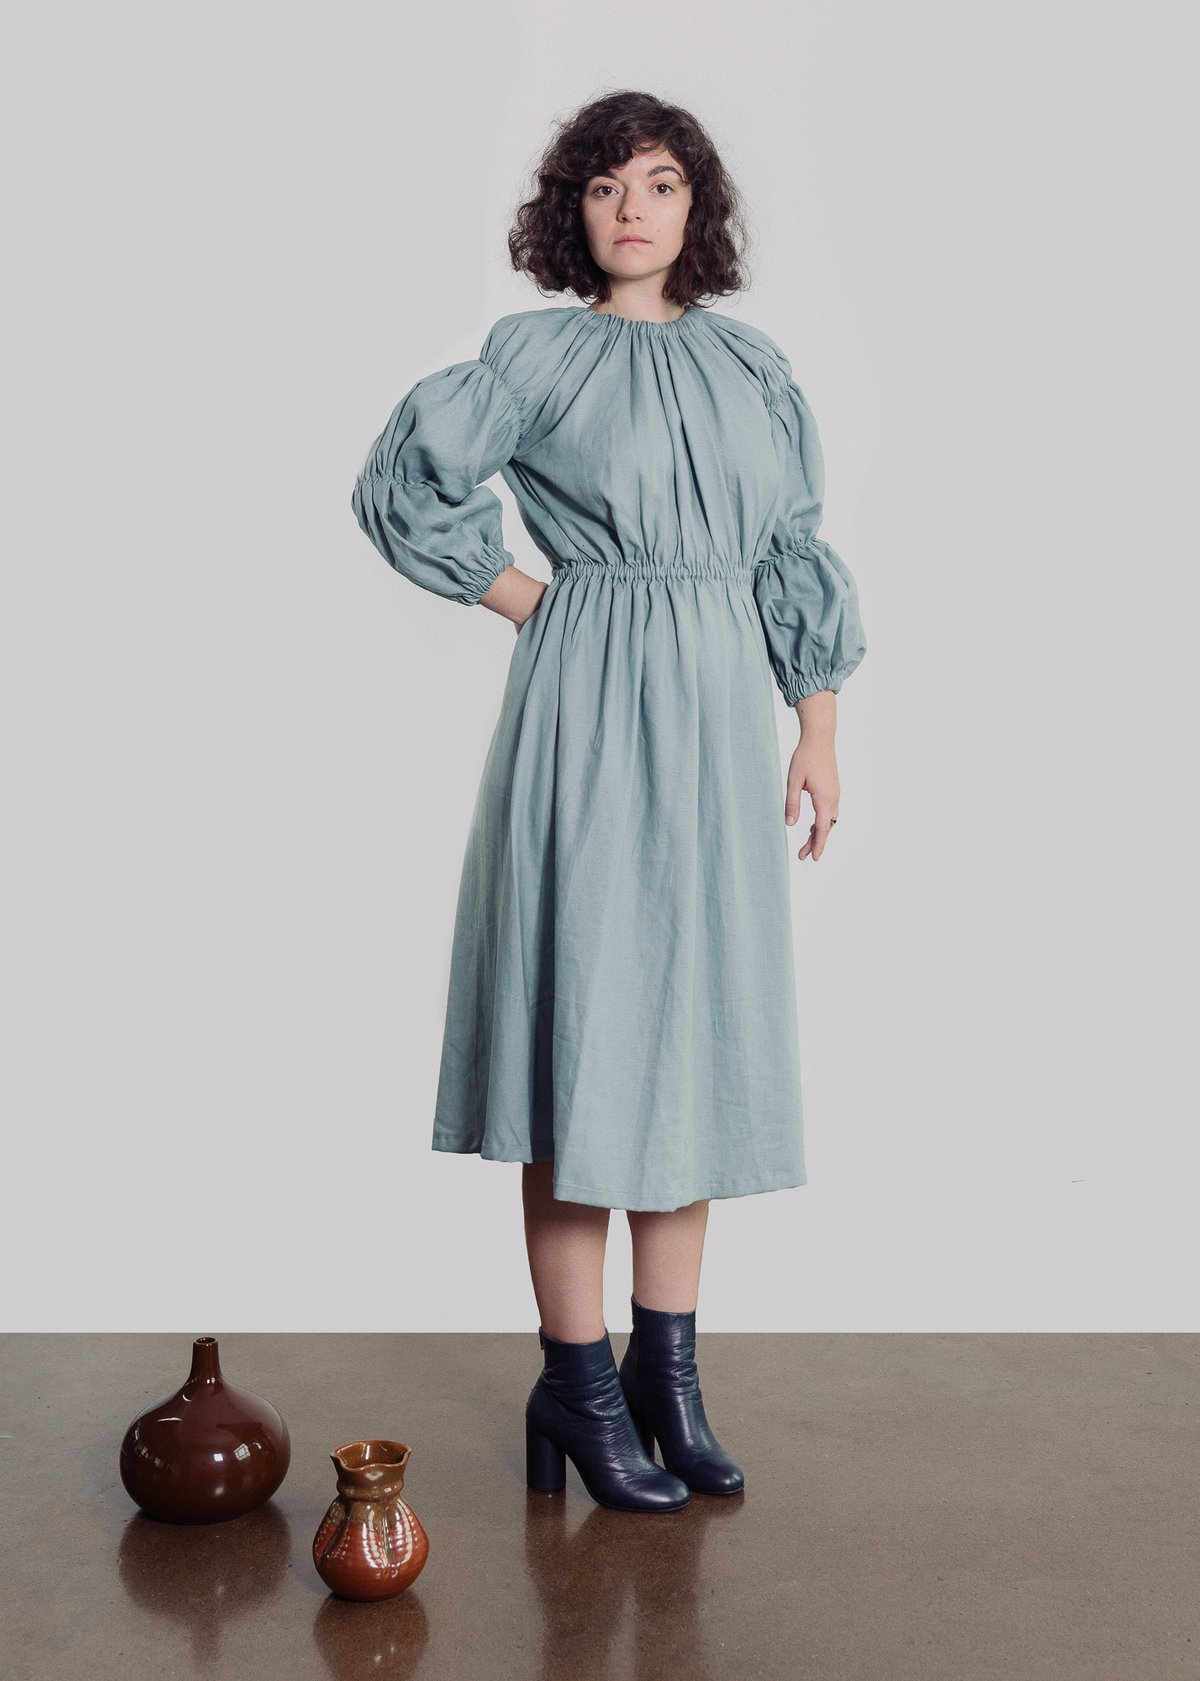 Annika Deboer Lauren Dress Steel Blue Ethical and Sustainable Fashion in New Zealand